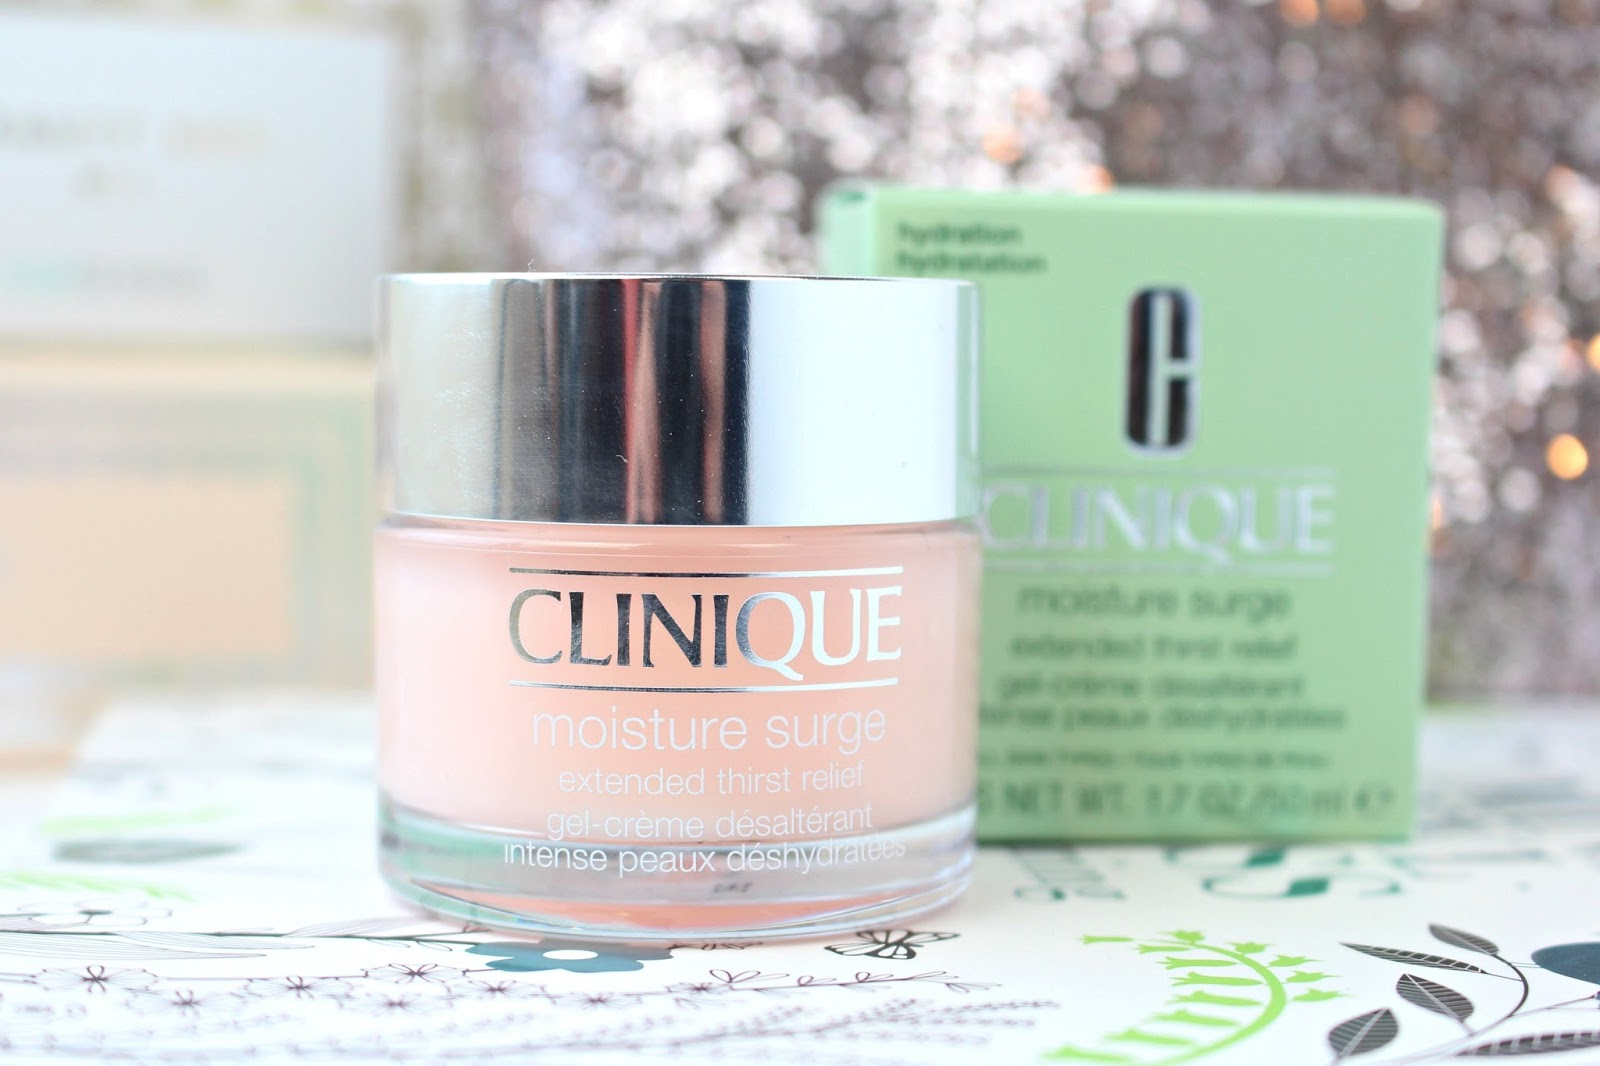 Clinique Moisture Surge Extended Thirst Relief Review